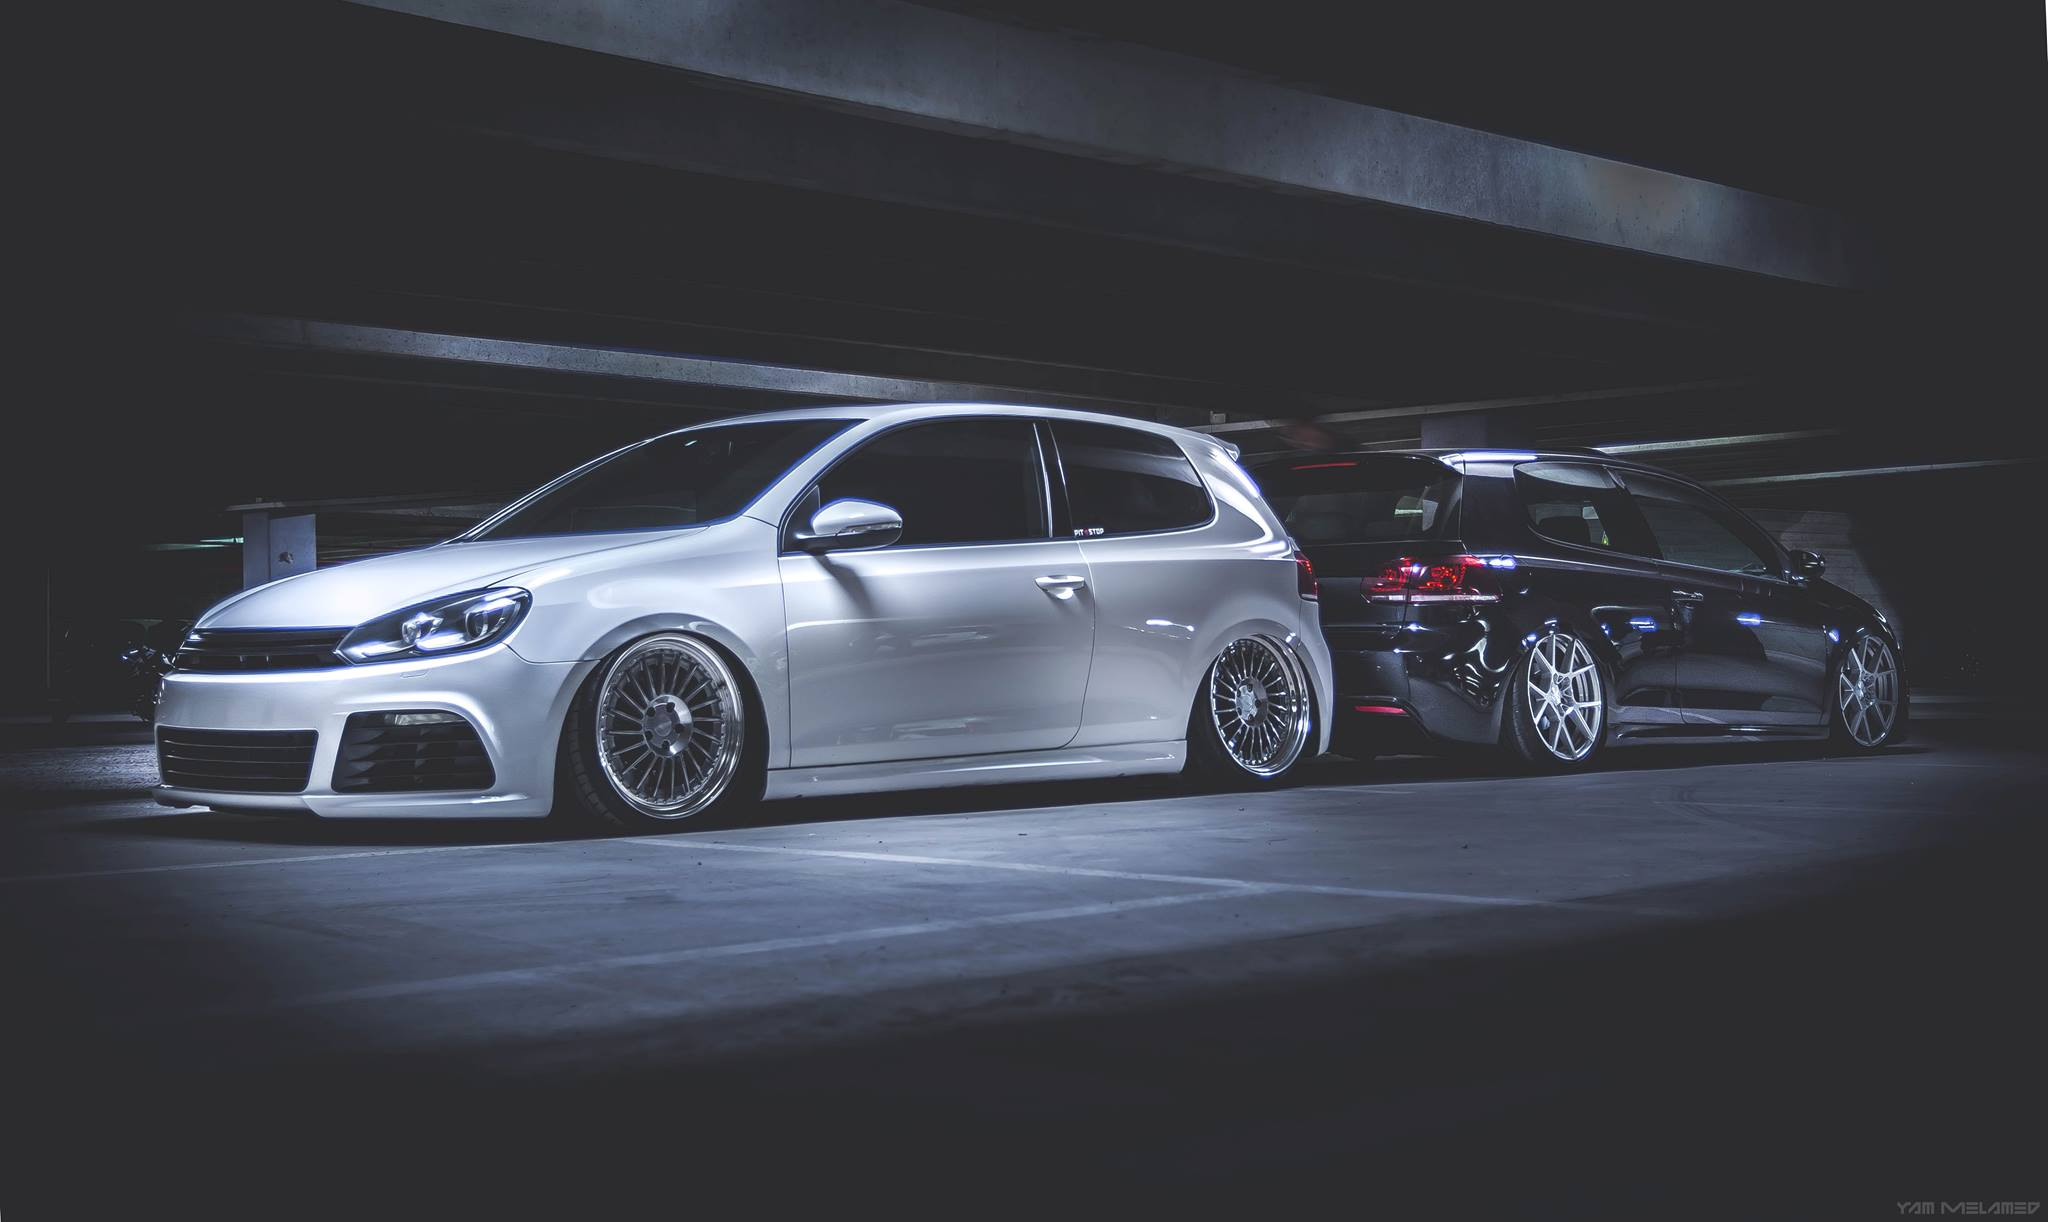 VW Golf Mk6, Stance, Low, Airride, Wheels, Formed